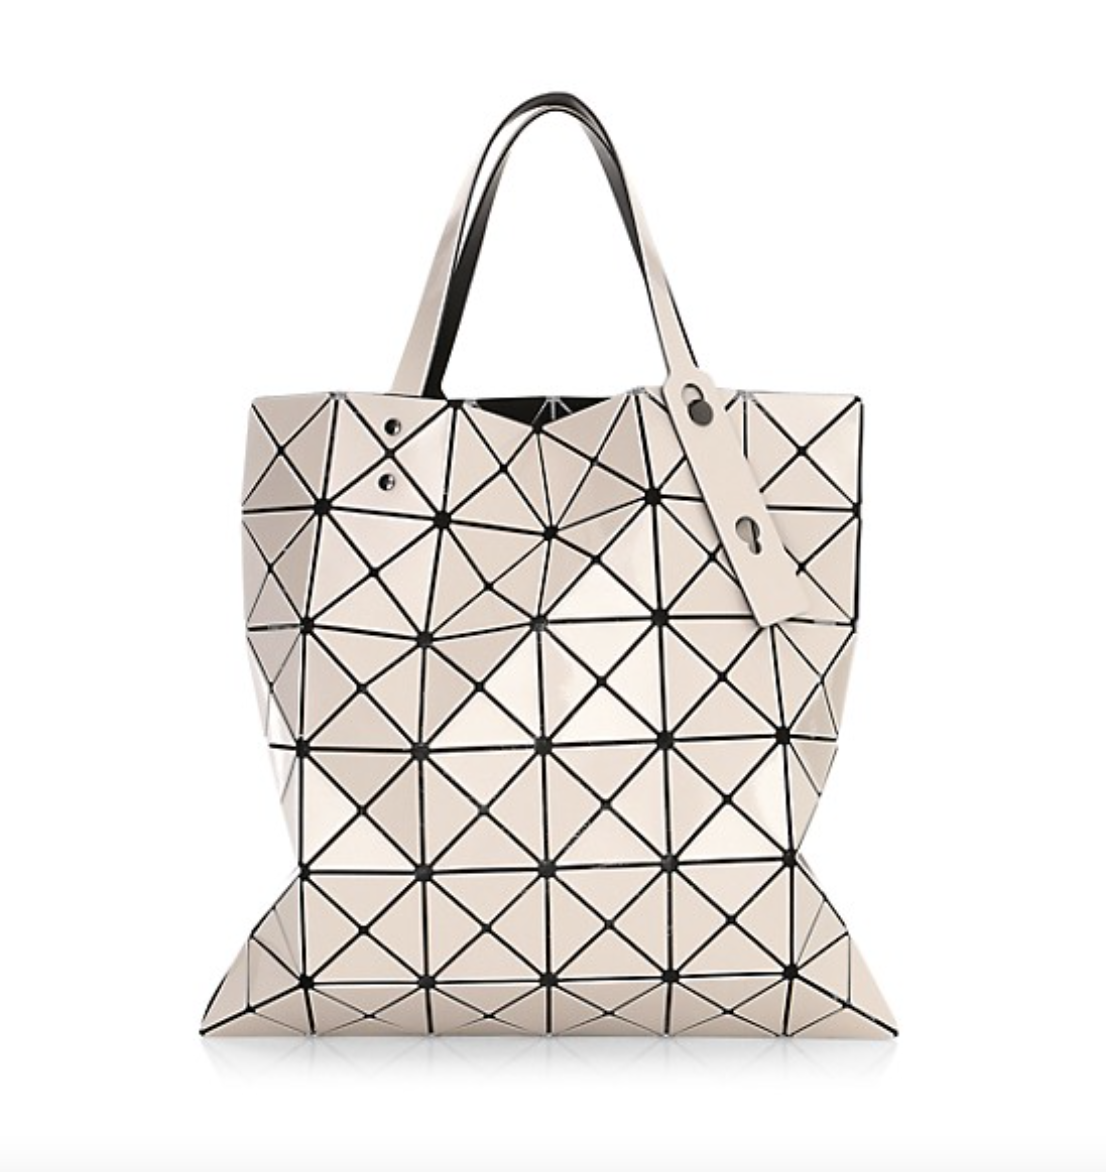 Saks Fifth Avenue: Up To 0 off shoes and bags